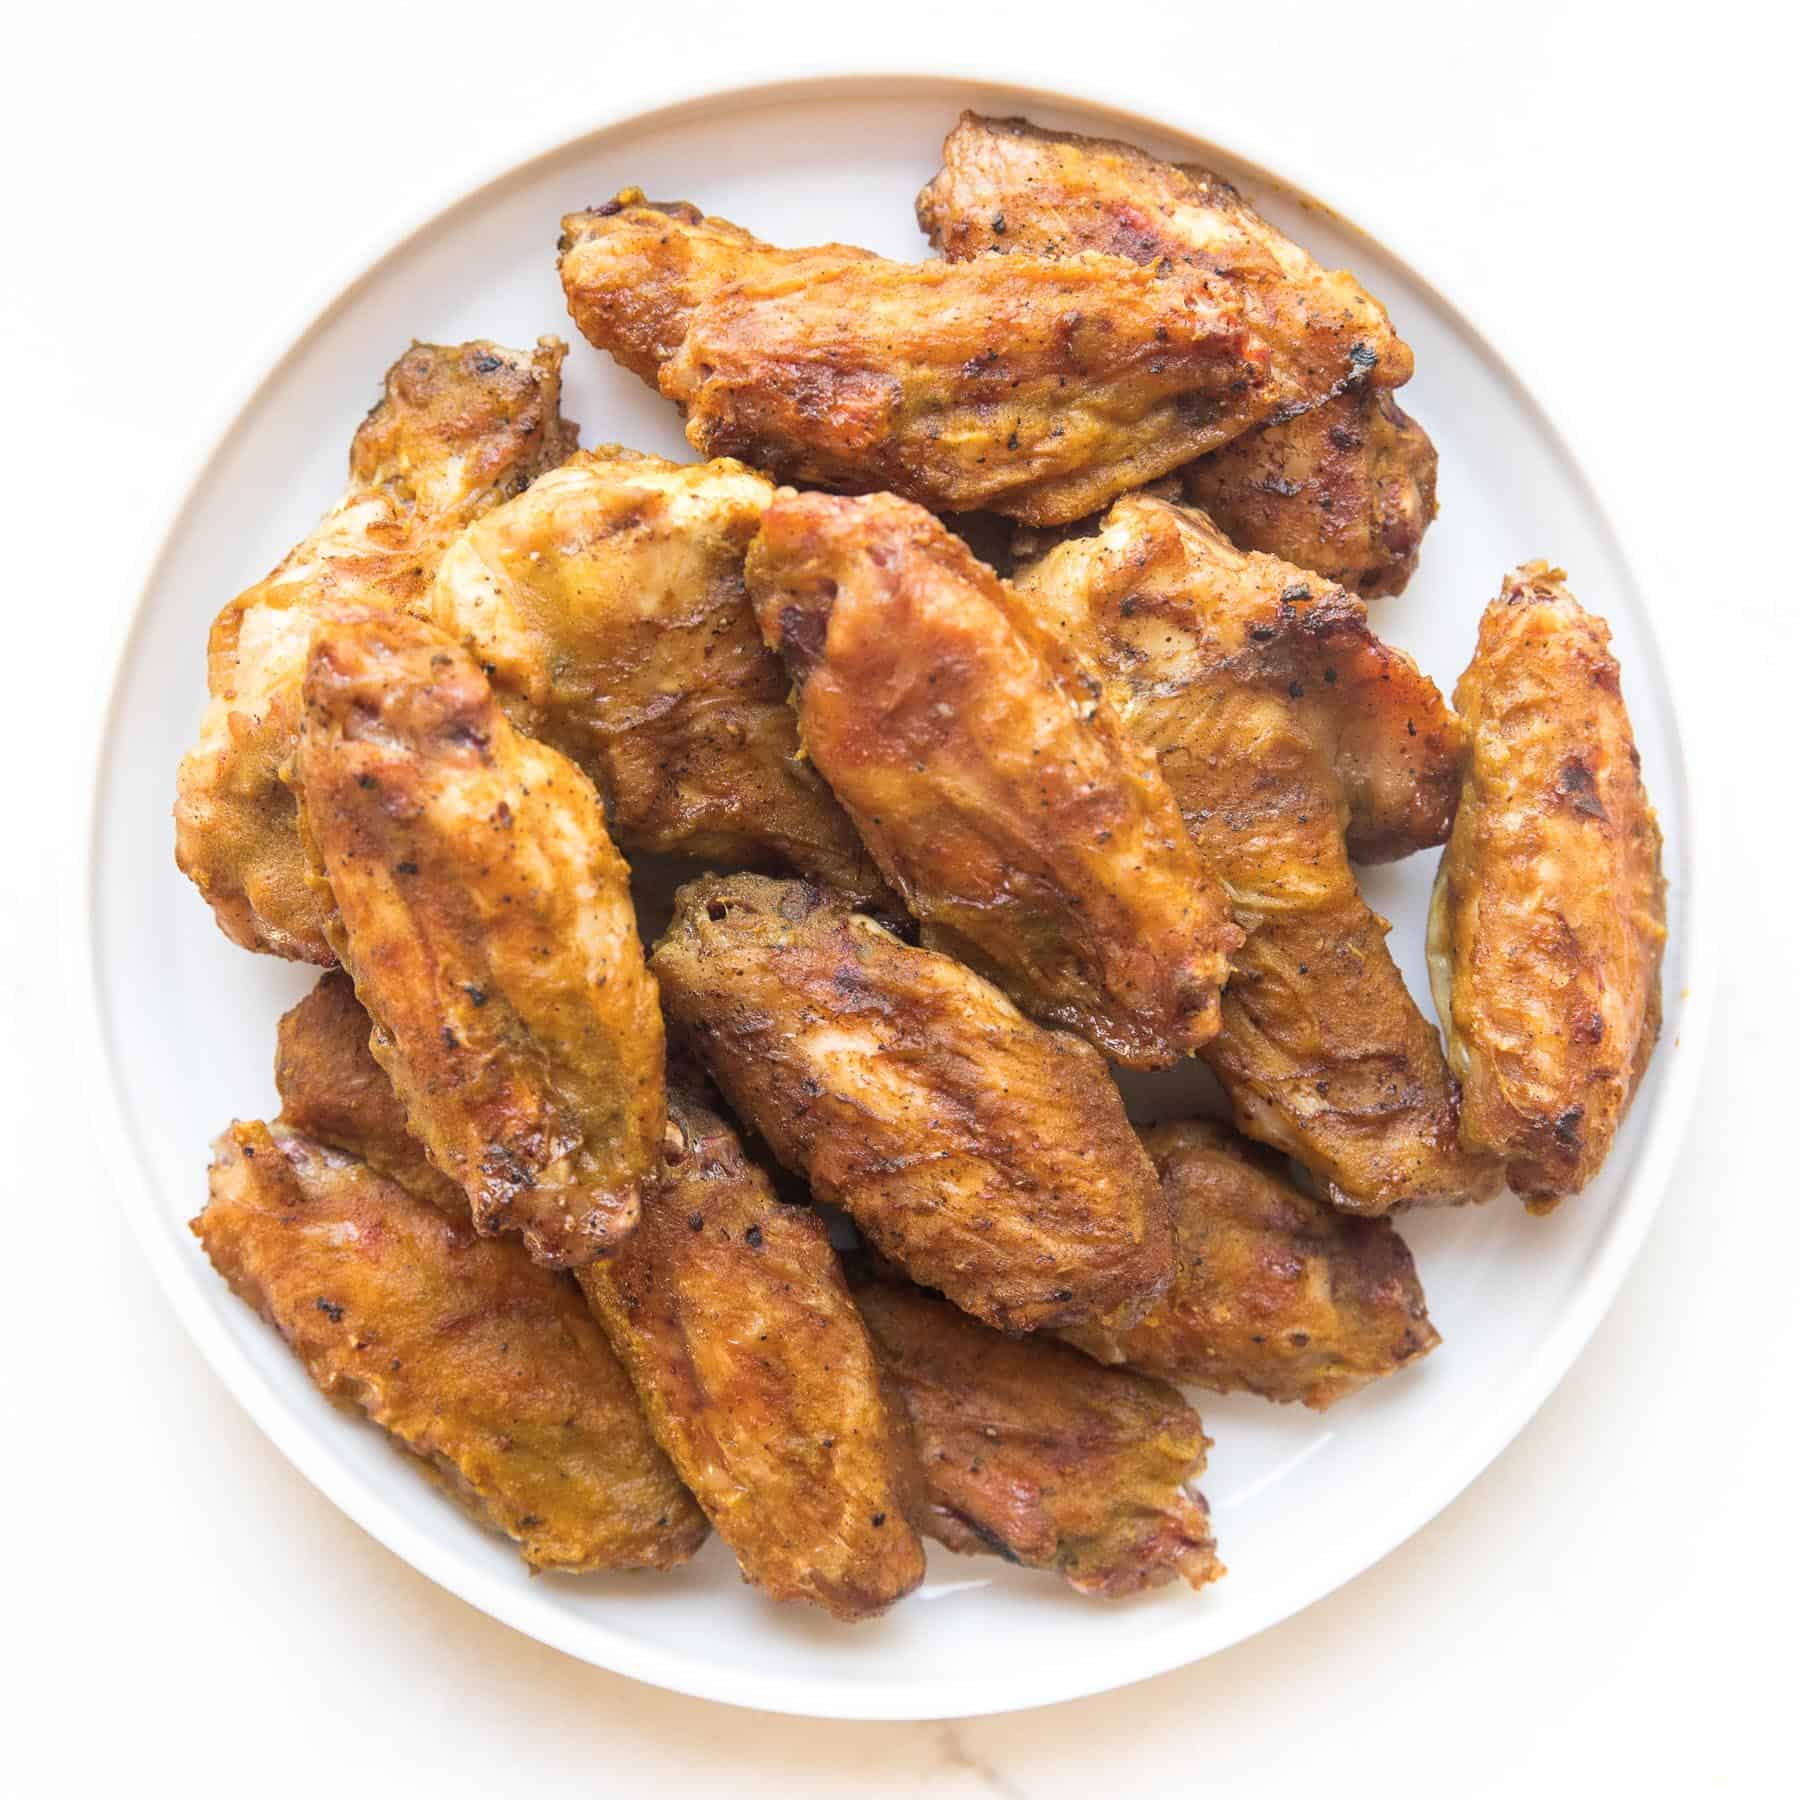 Overhead shot of a pile of grilled chicken wings on a white plate